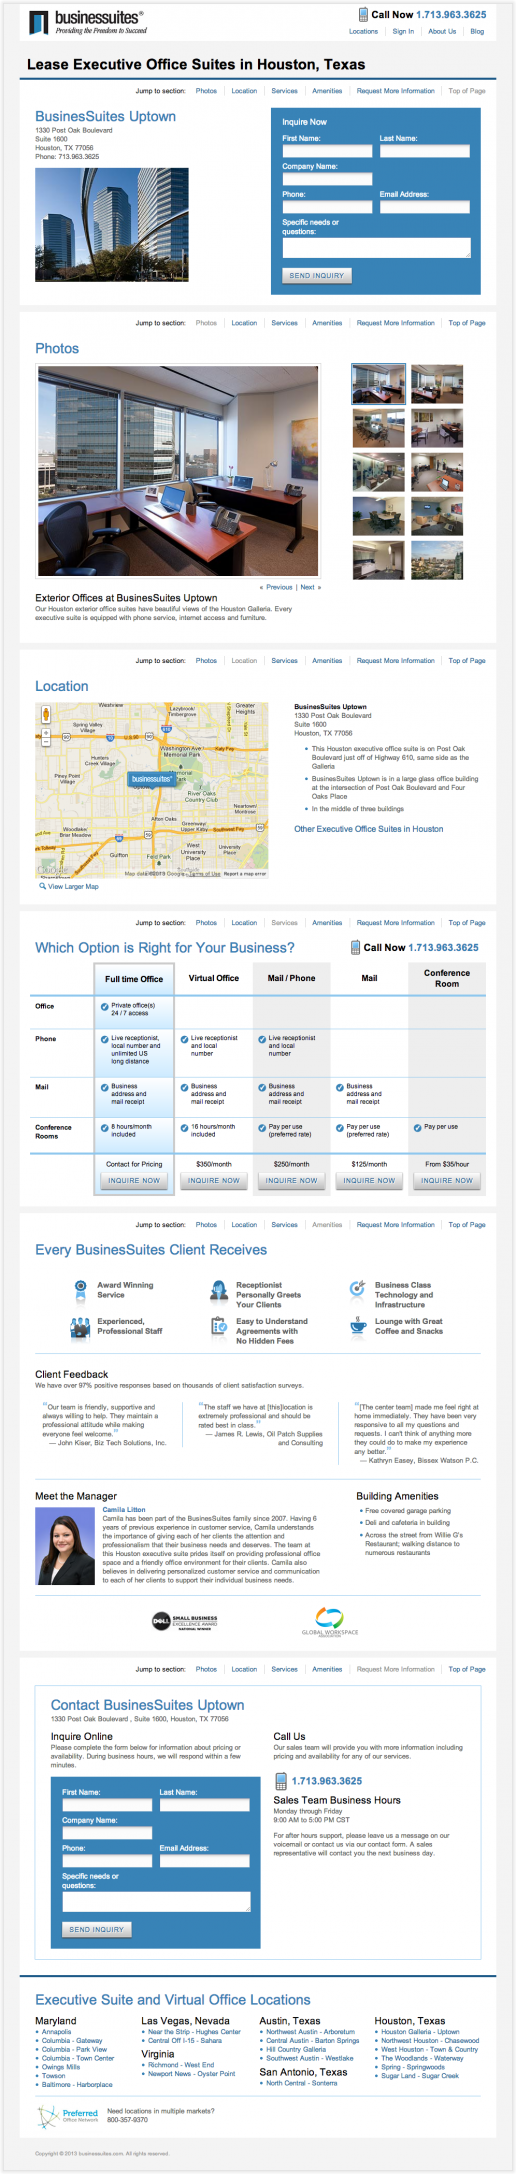 BusinesSuites Property Detail Page – example 3